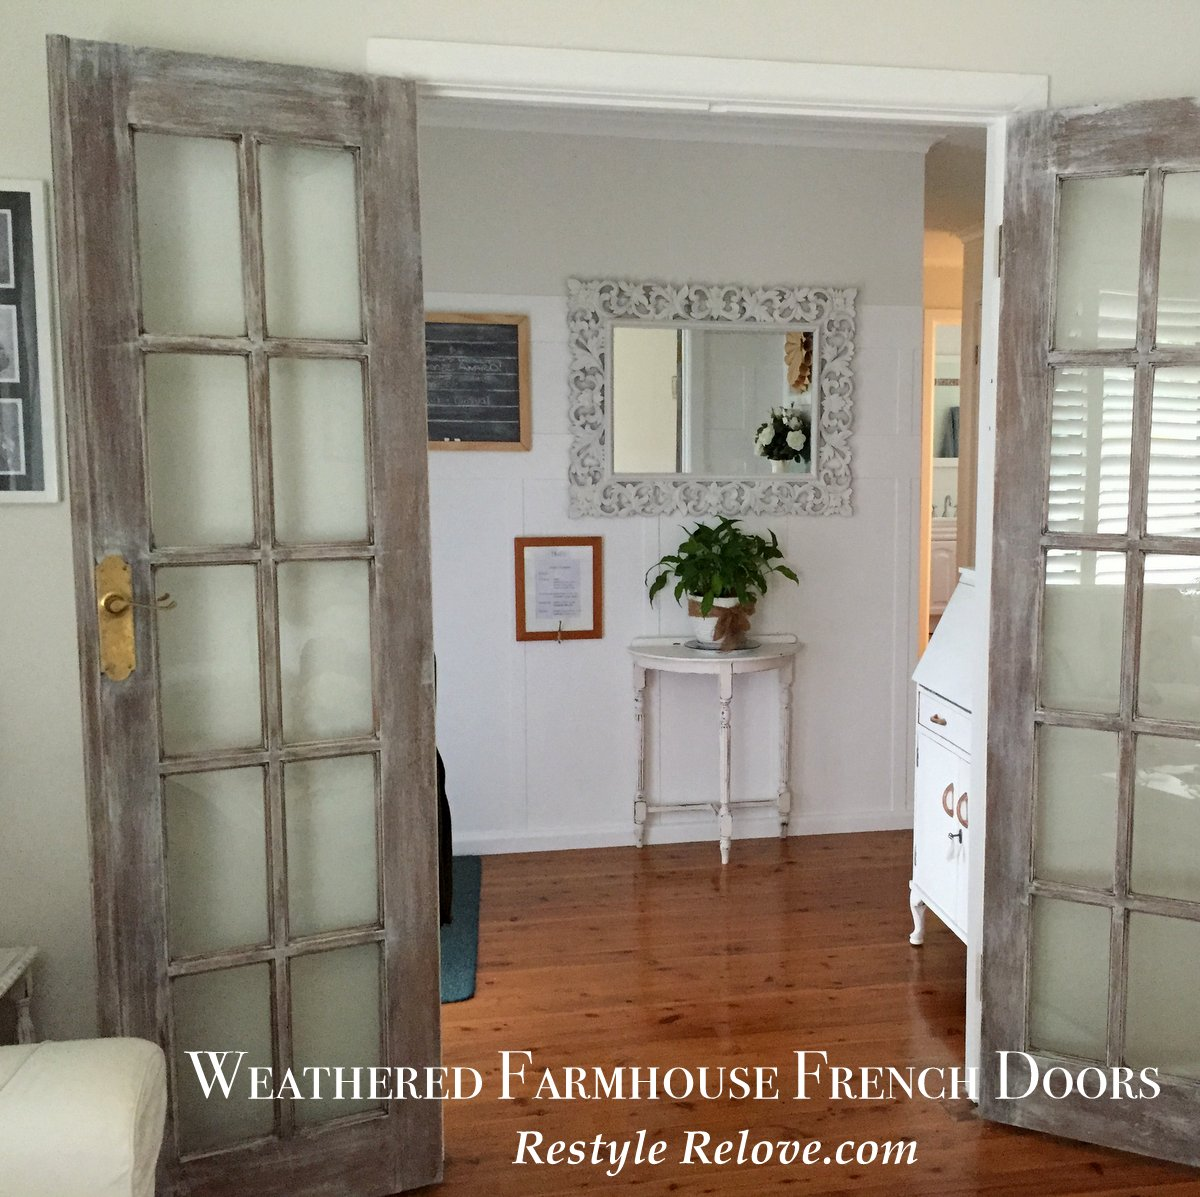 & Farmhouse French Doors Final Weathering!